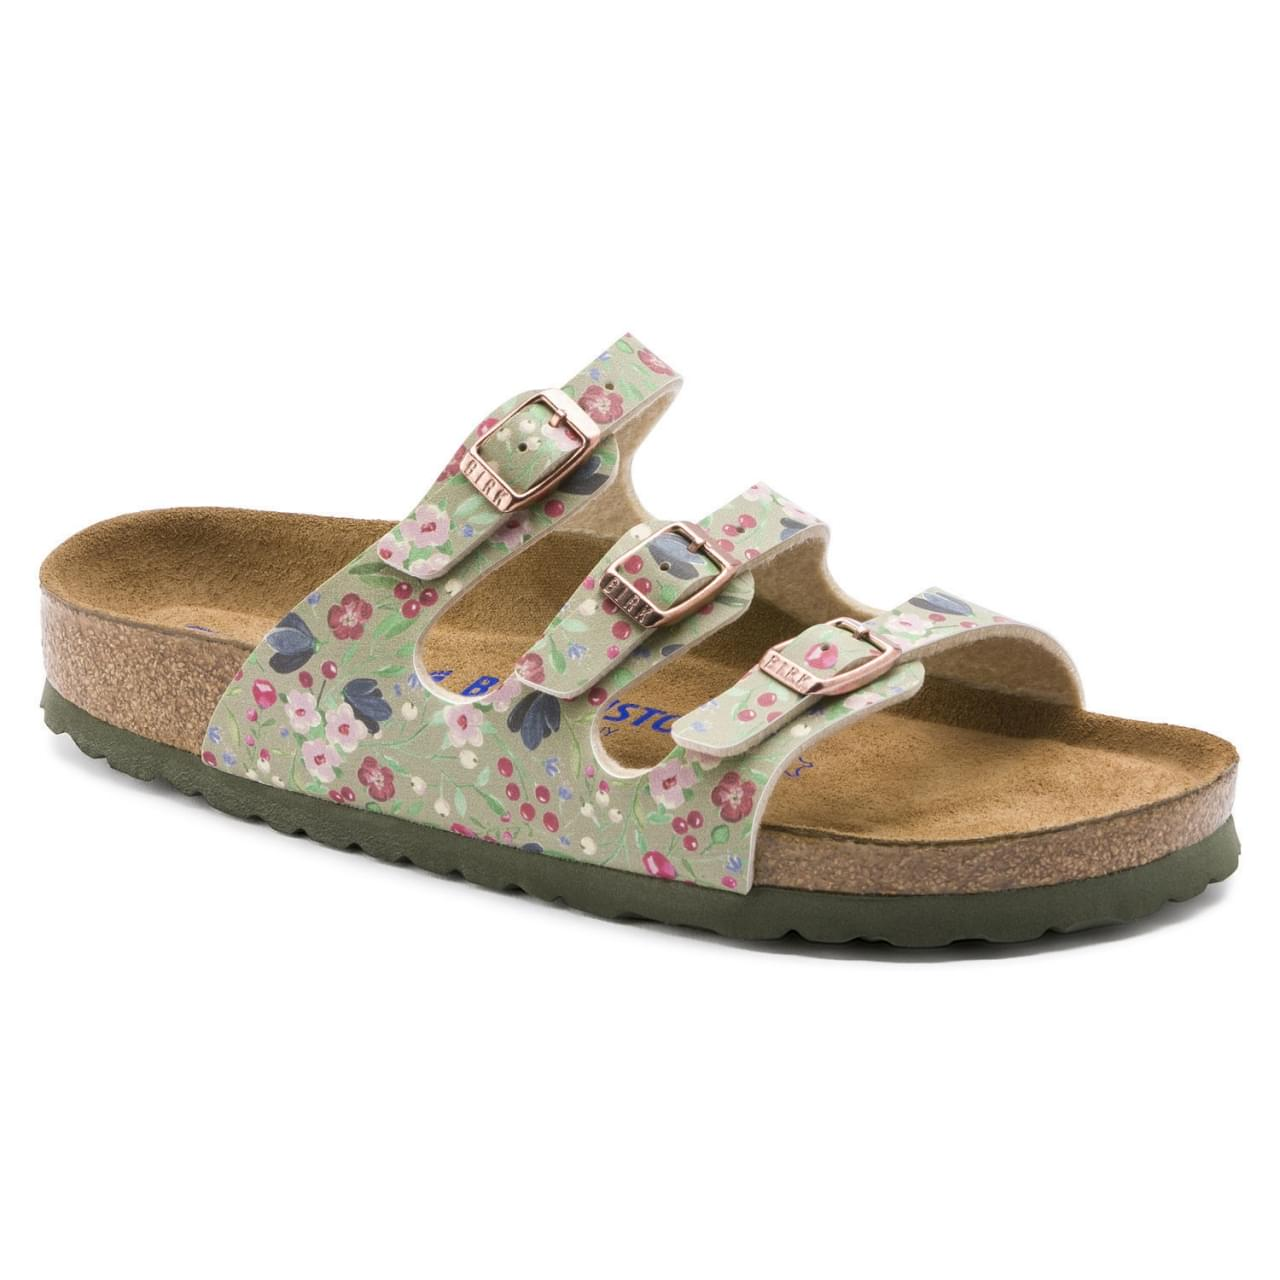 Birkenstock Florida SFB Meadow Flowers Narrow Slipper Dames